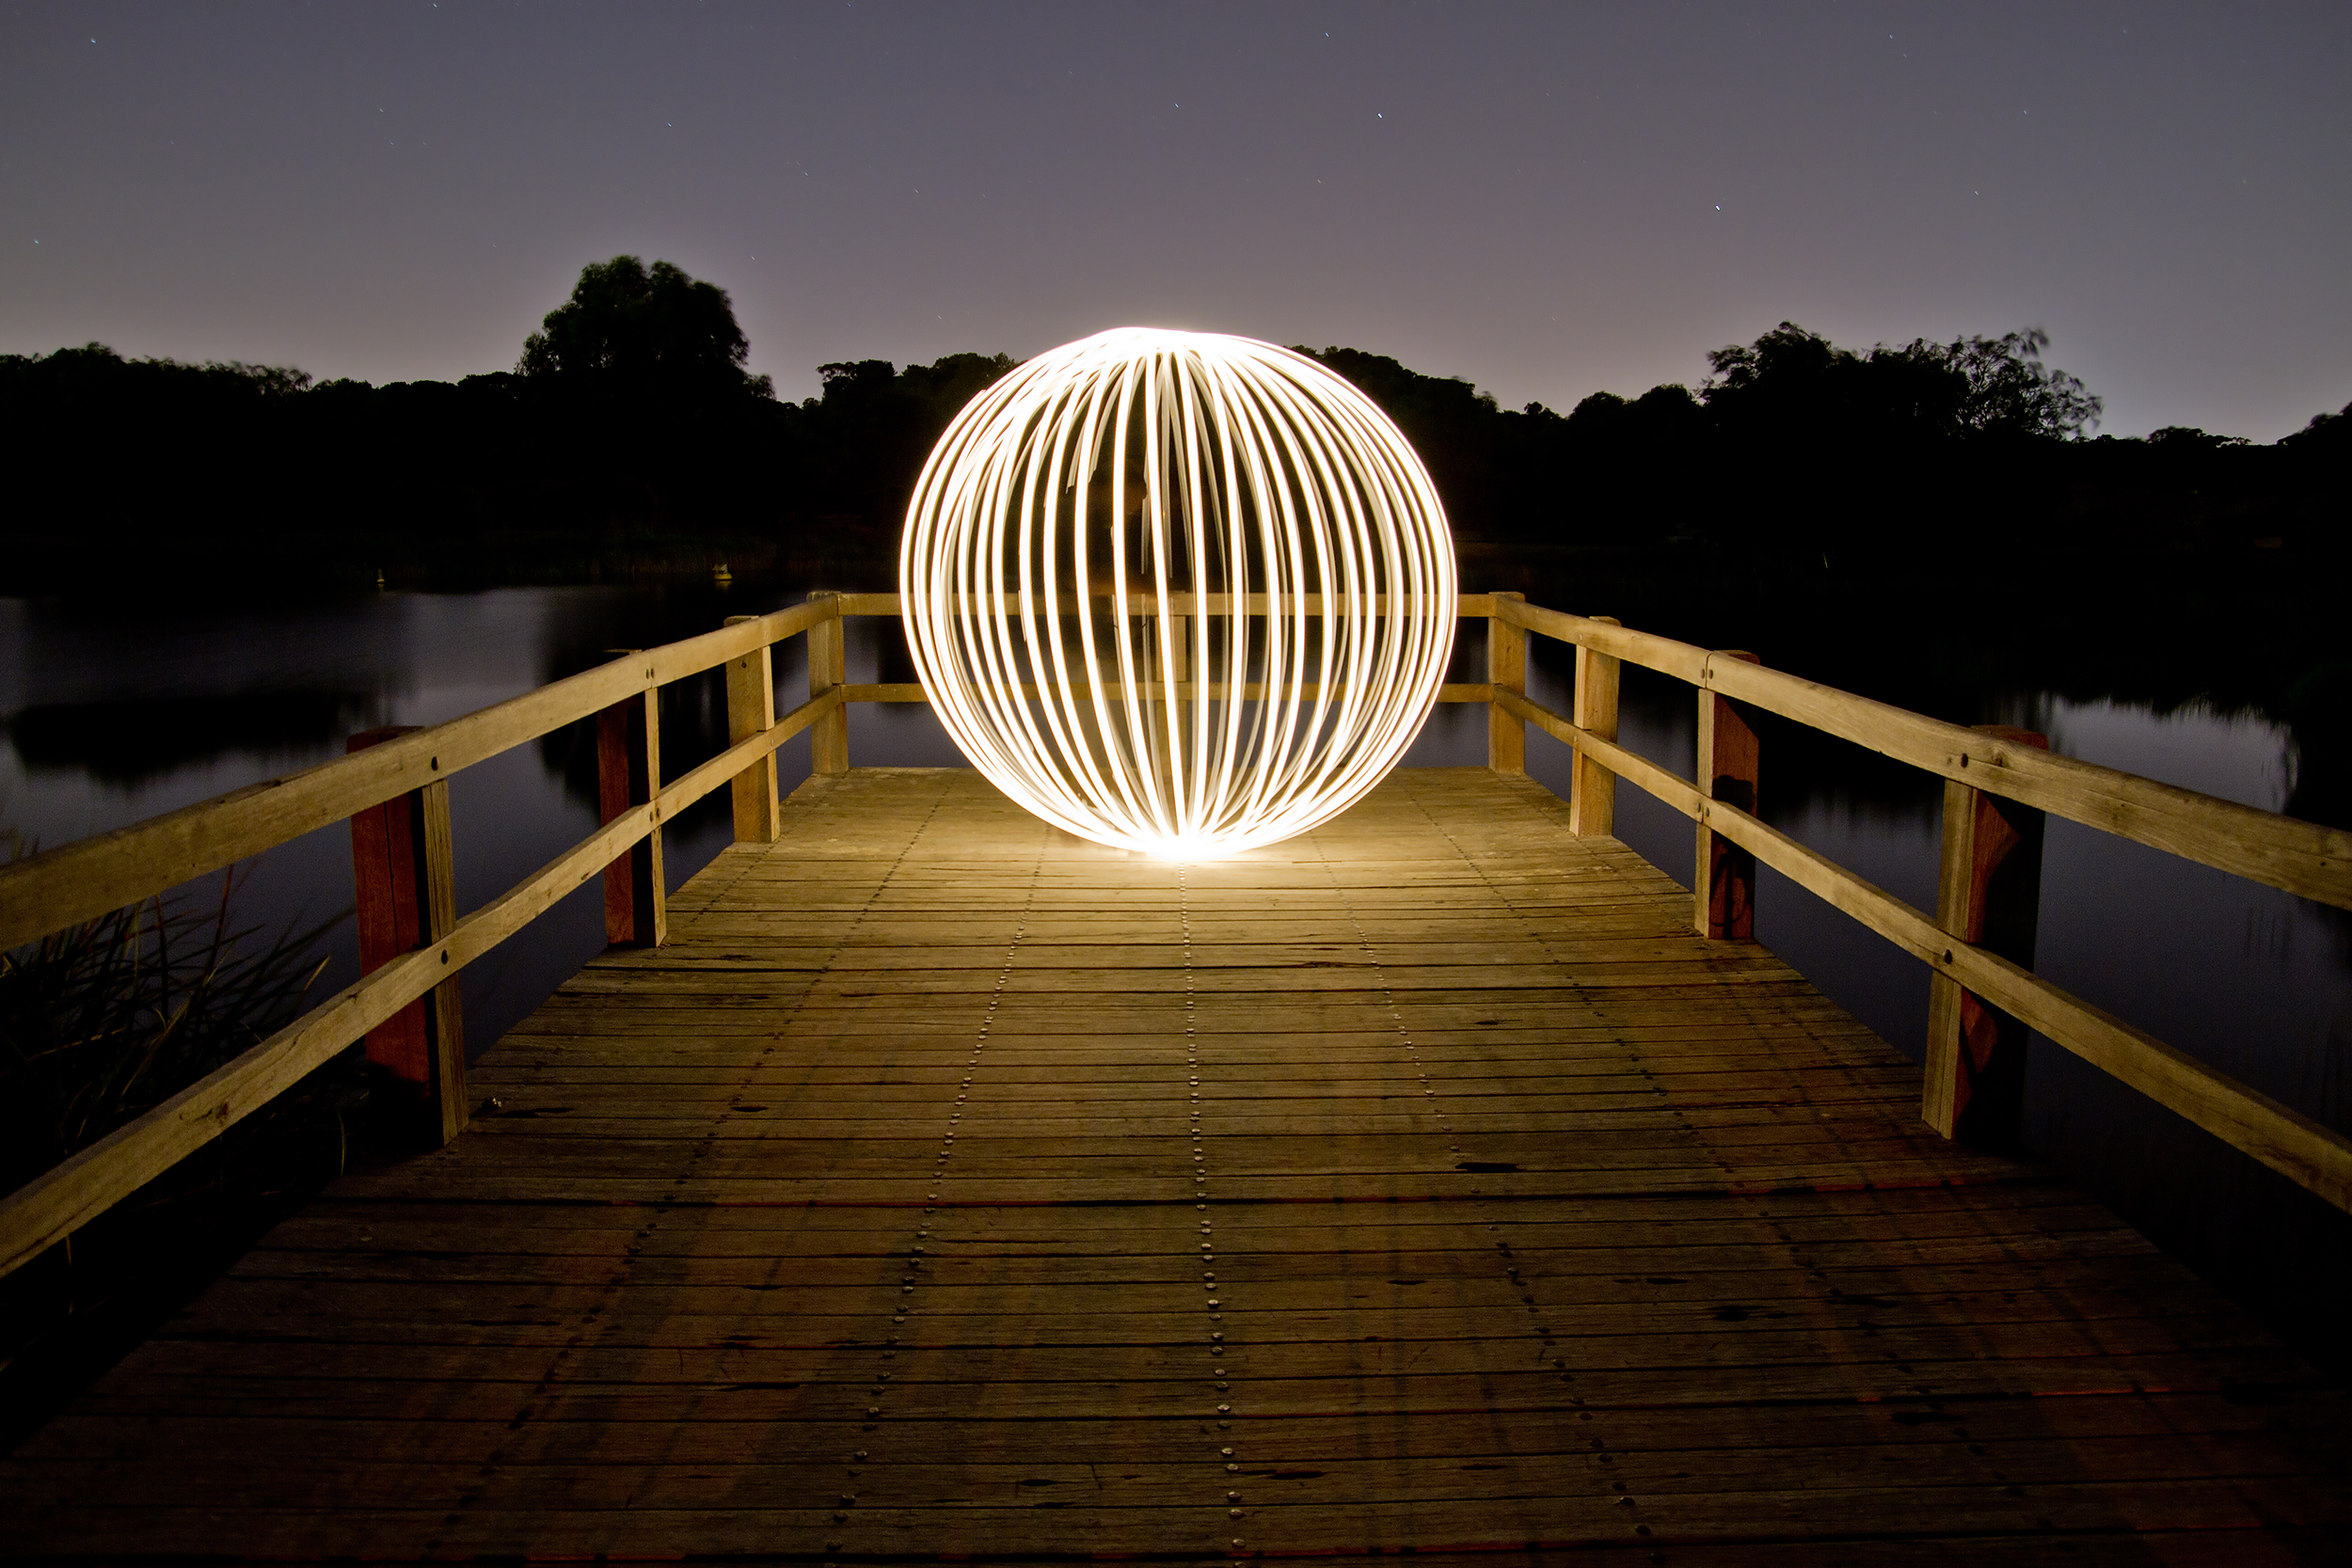 File:Light Painting 1 - Booyeembara Park.jpg - Wikimedia Commons